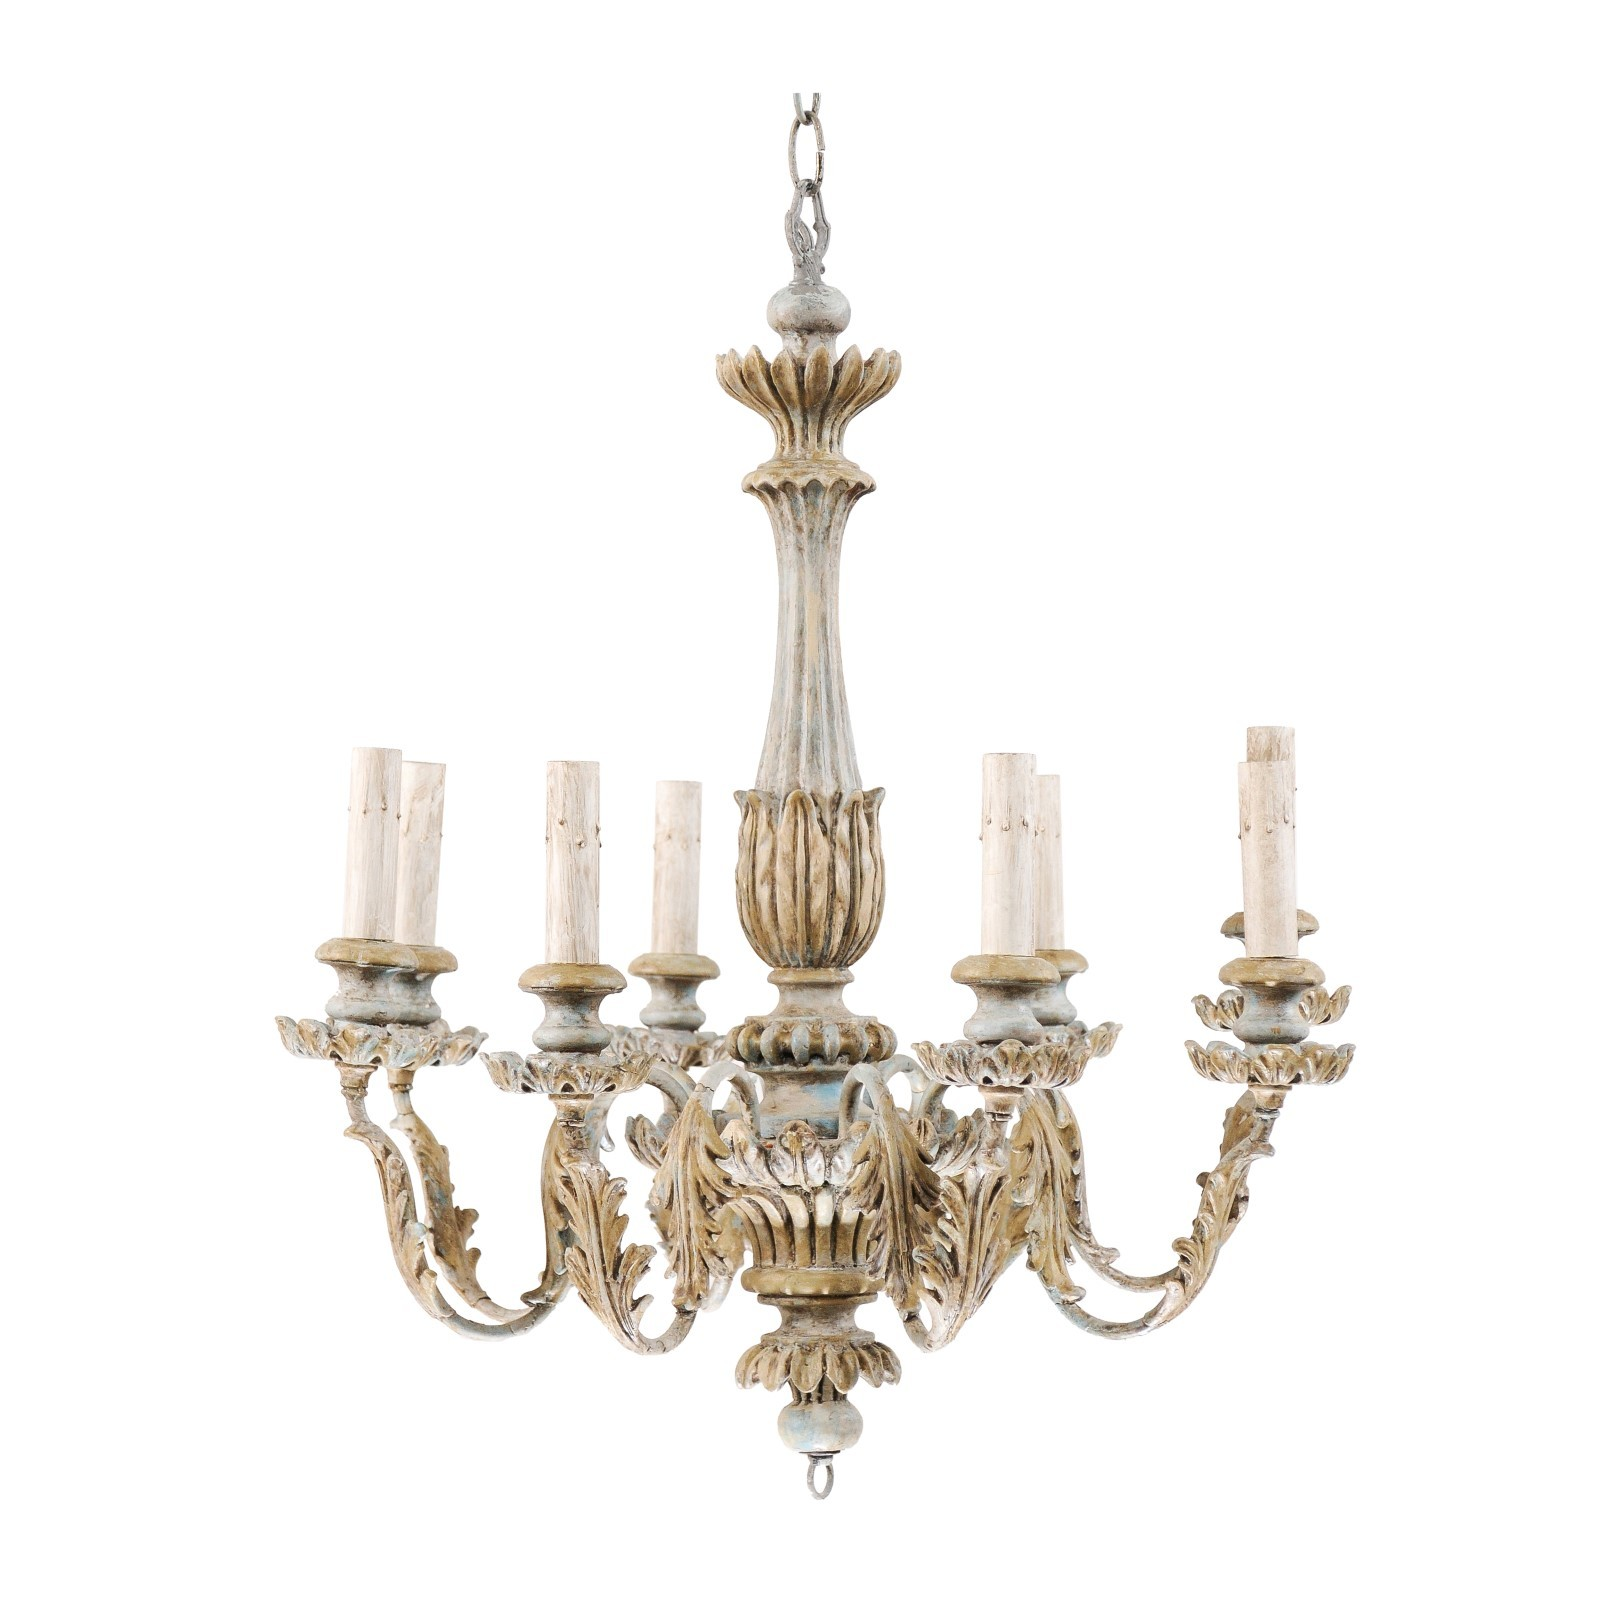 French 8-Light Chandelier, Mid 20th C.